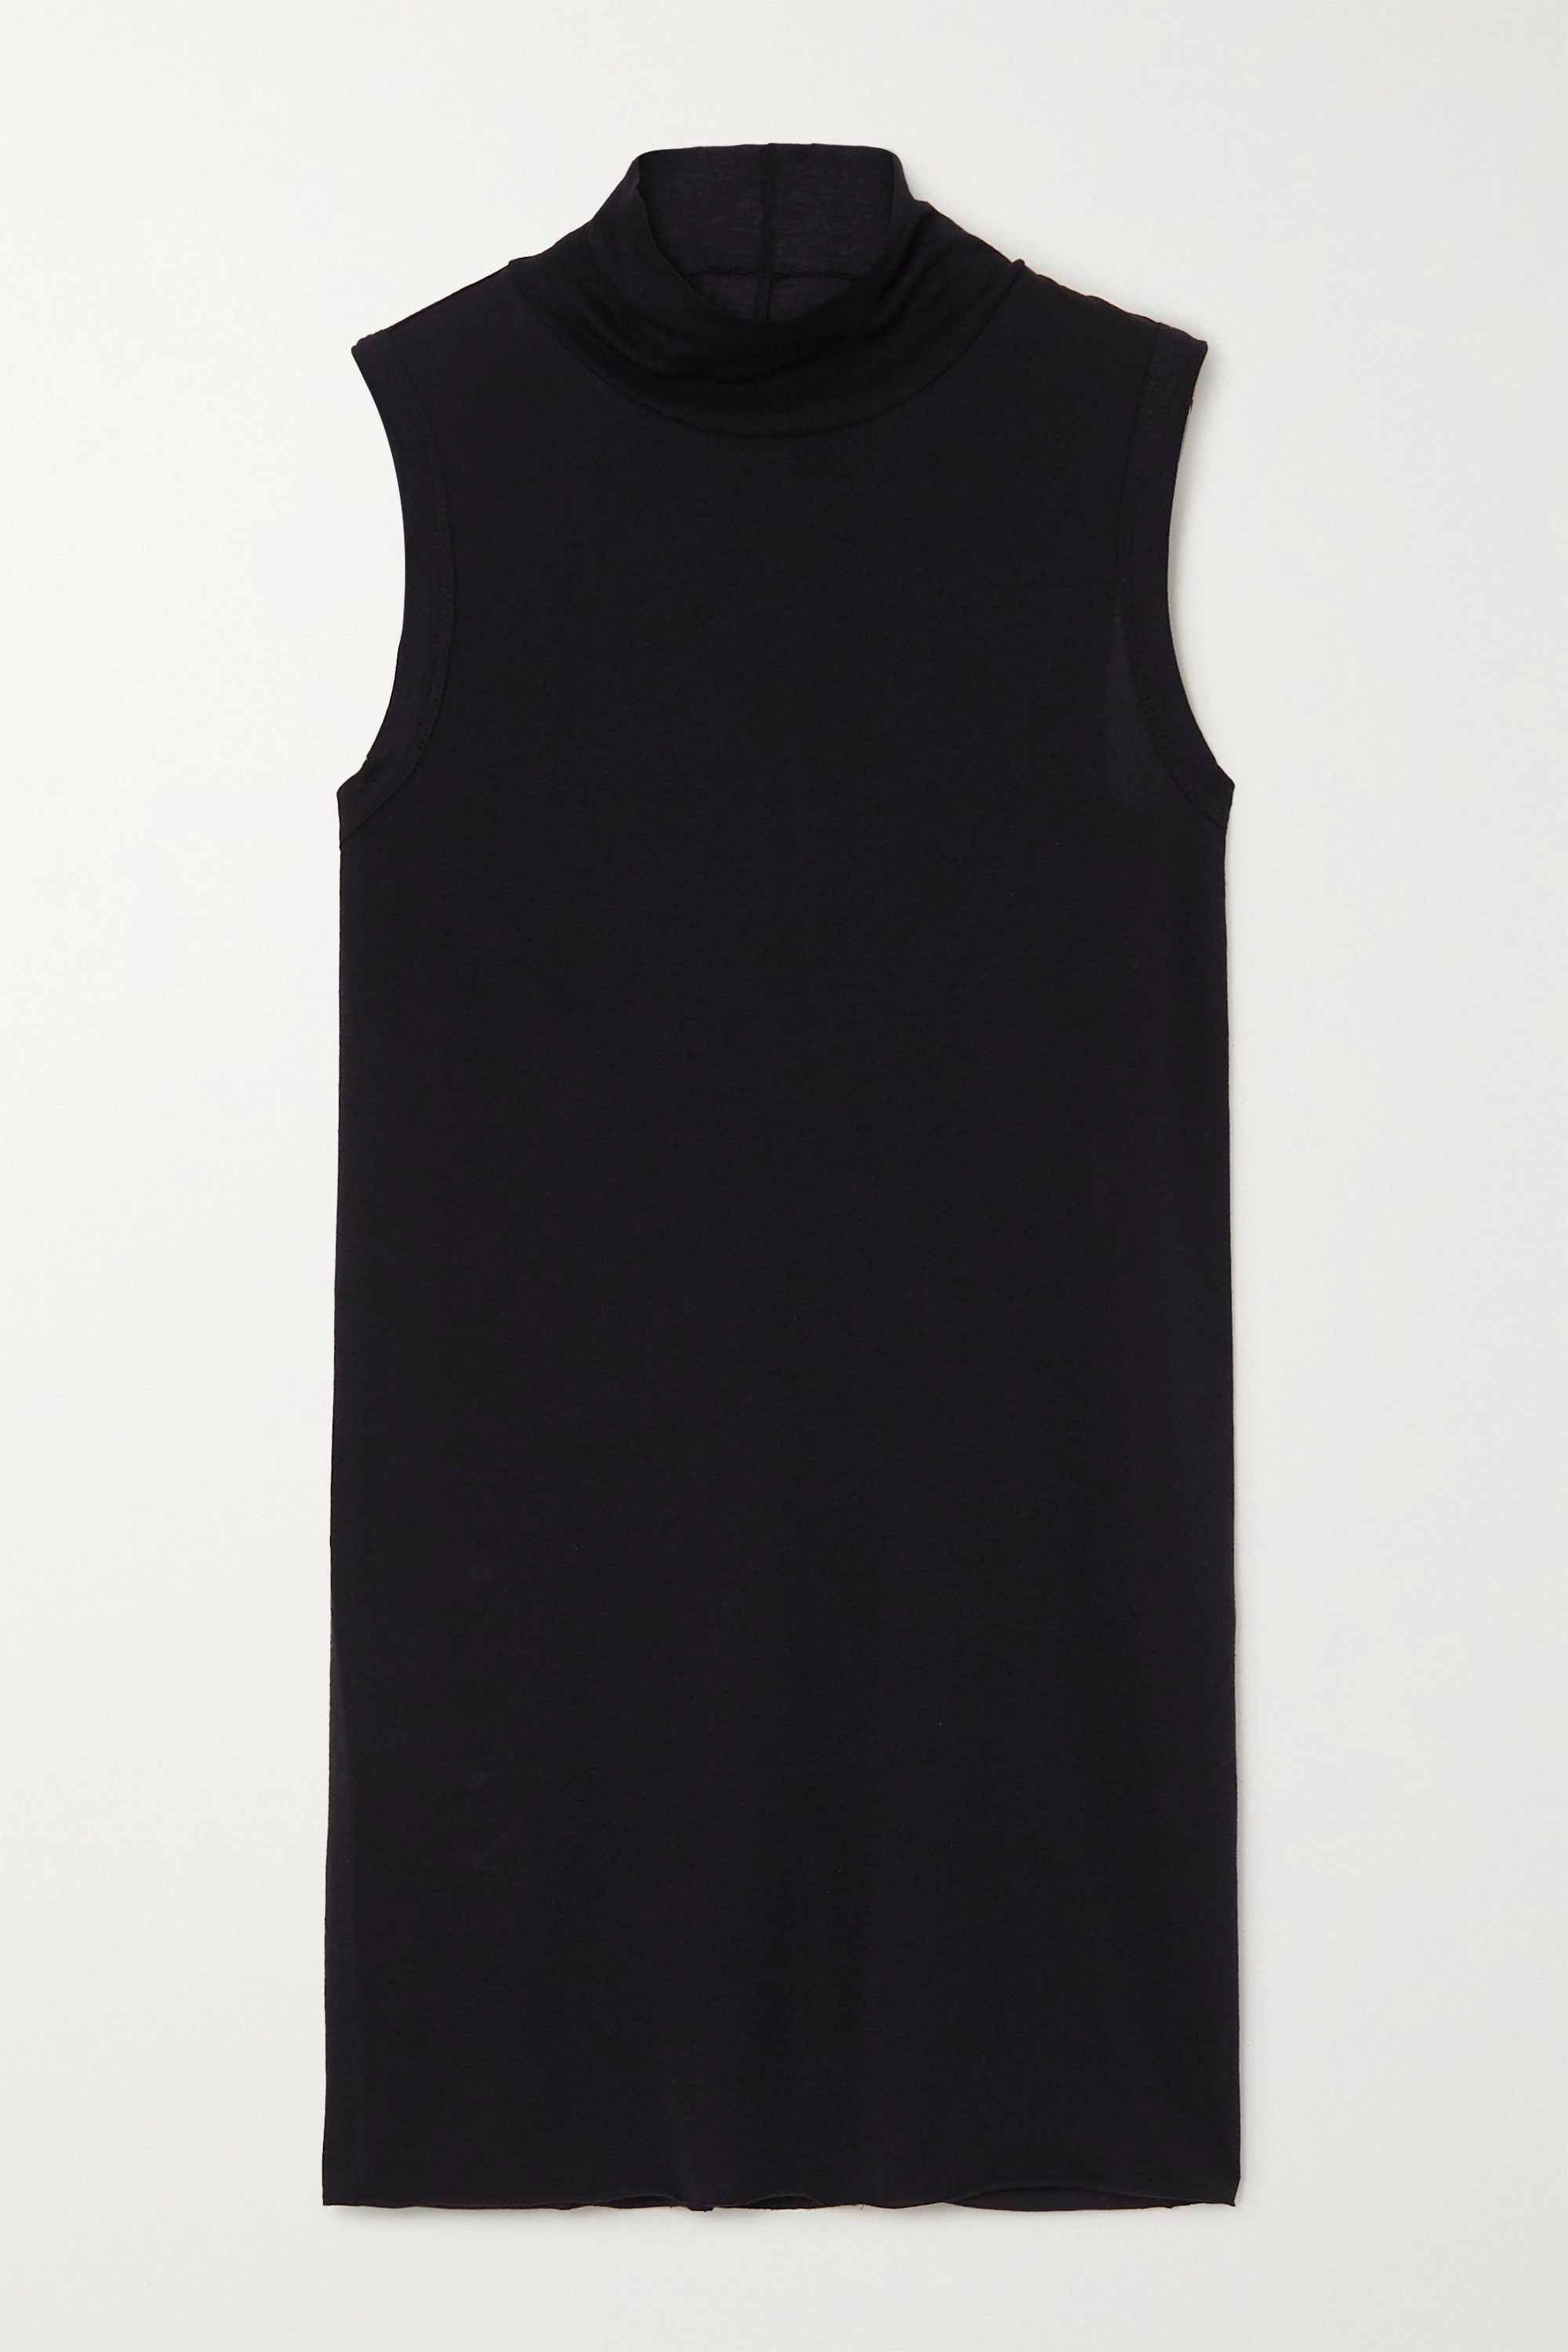 Rick Owens Lilies jersey turtleneck top